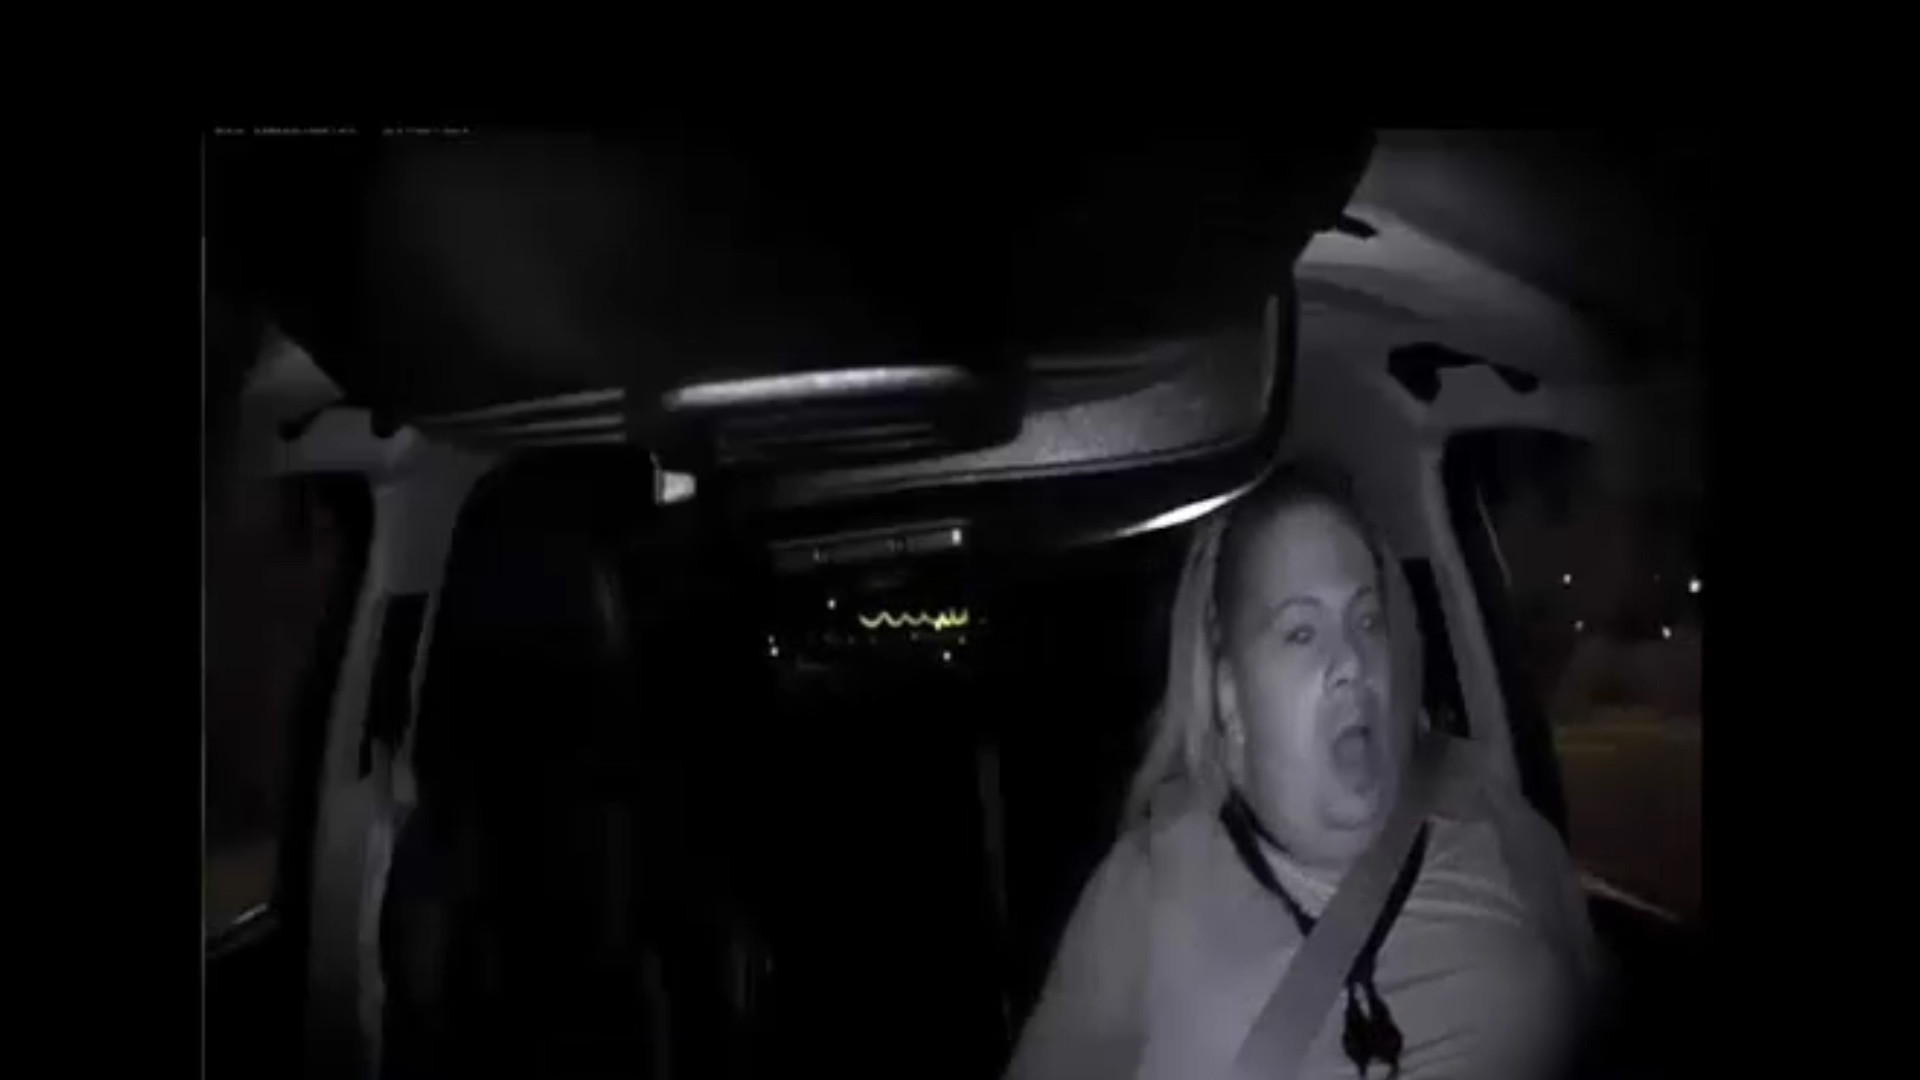 Uber driver streaming 'The Voice' just before fatal Arizona crash